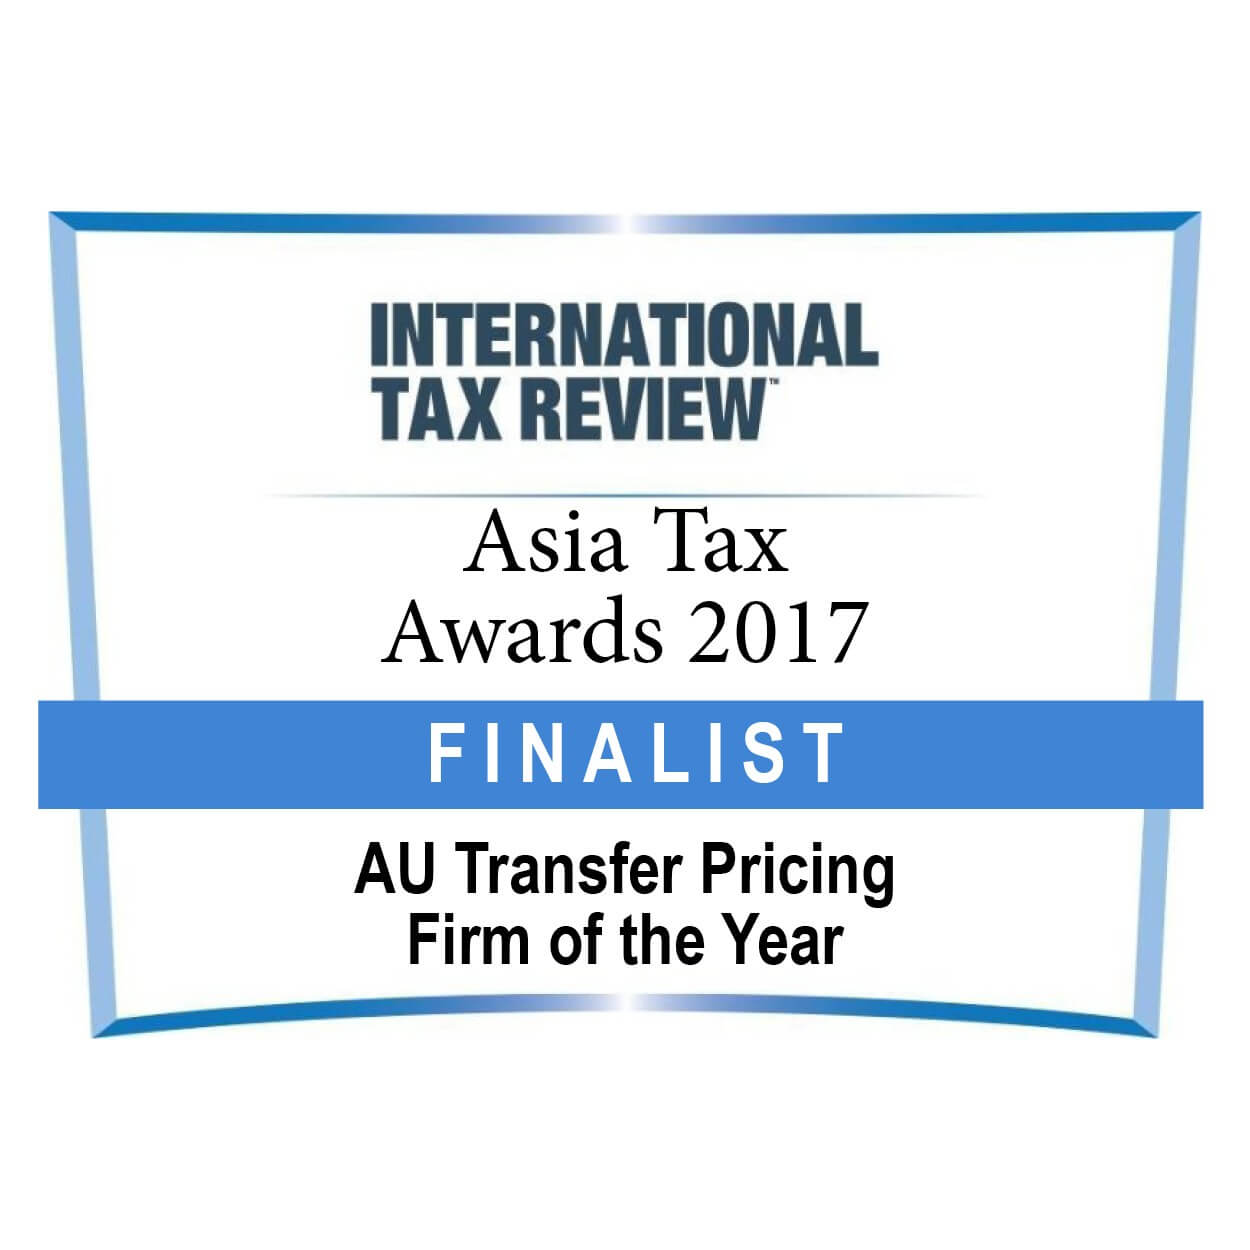 AU TP firm of the Year Asia Tax Awards FINALIST 2017